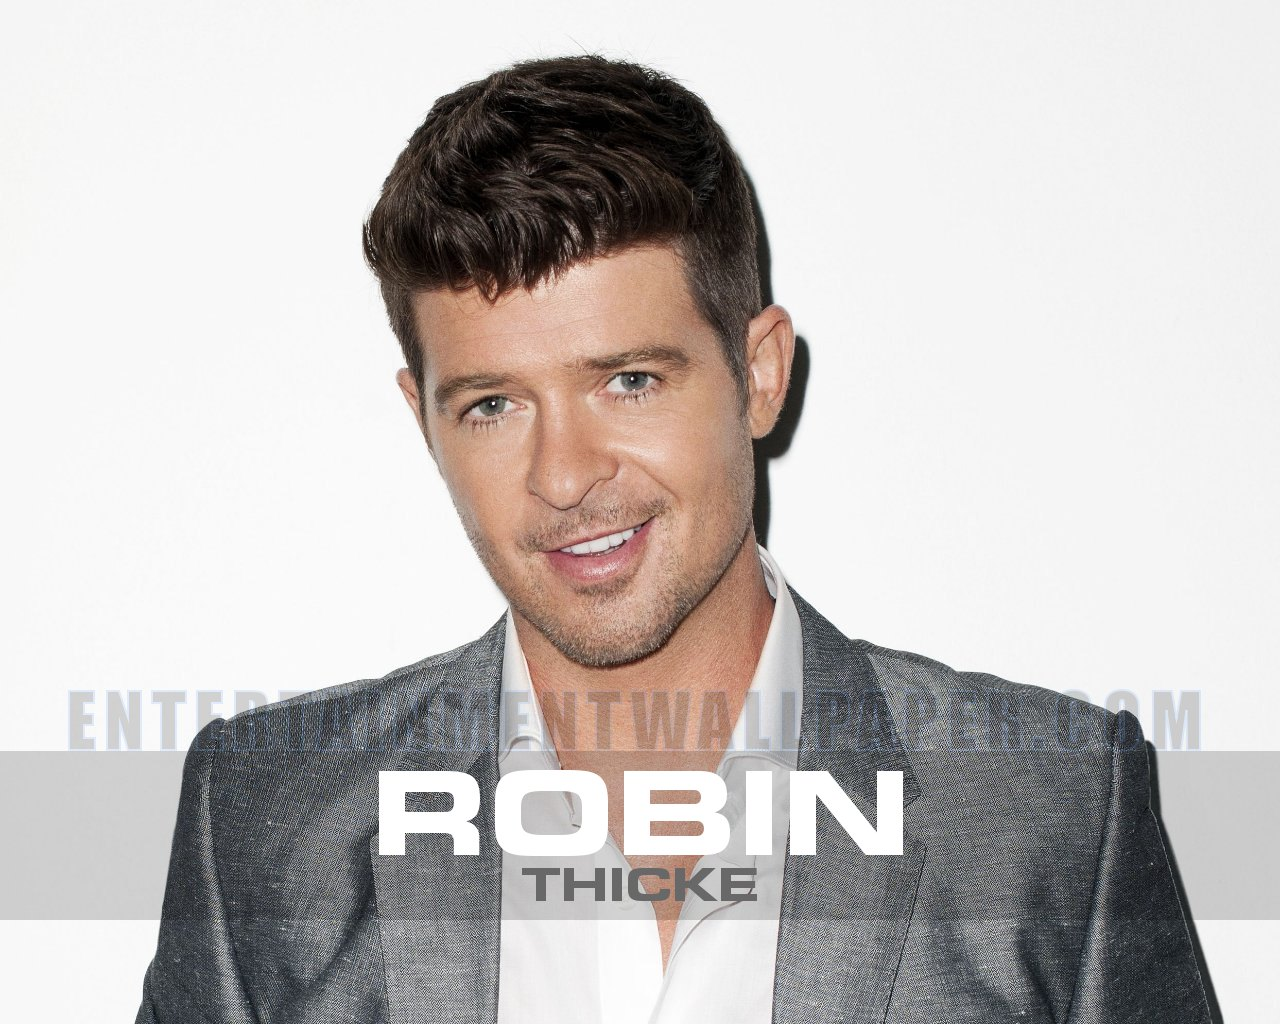 Robin Thicke Wallpaper - Original size, download now.